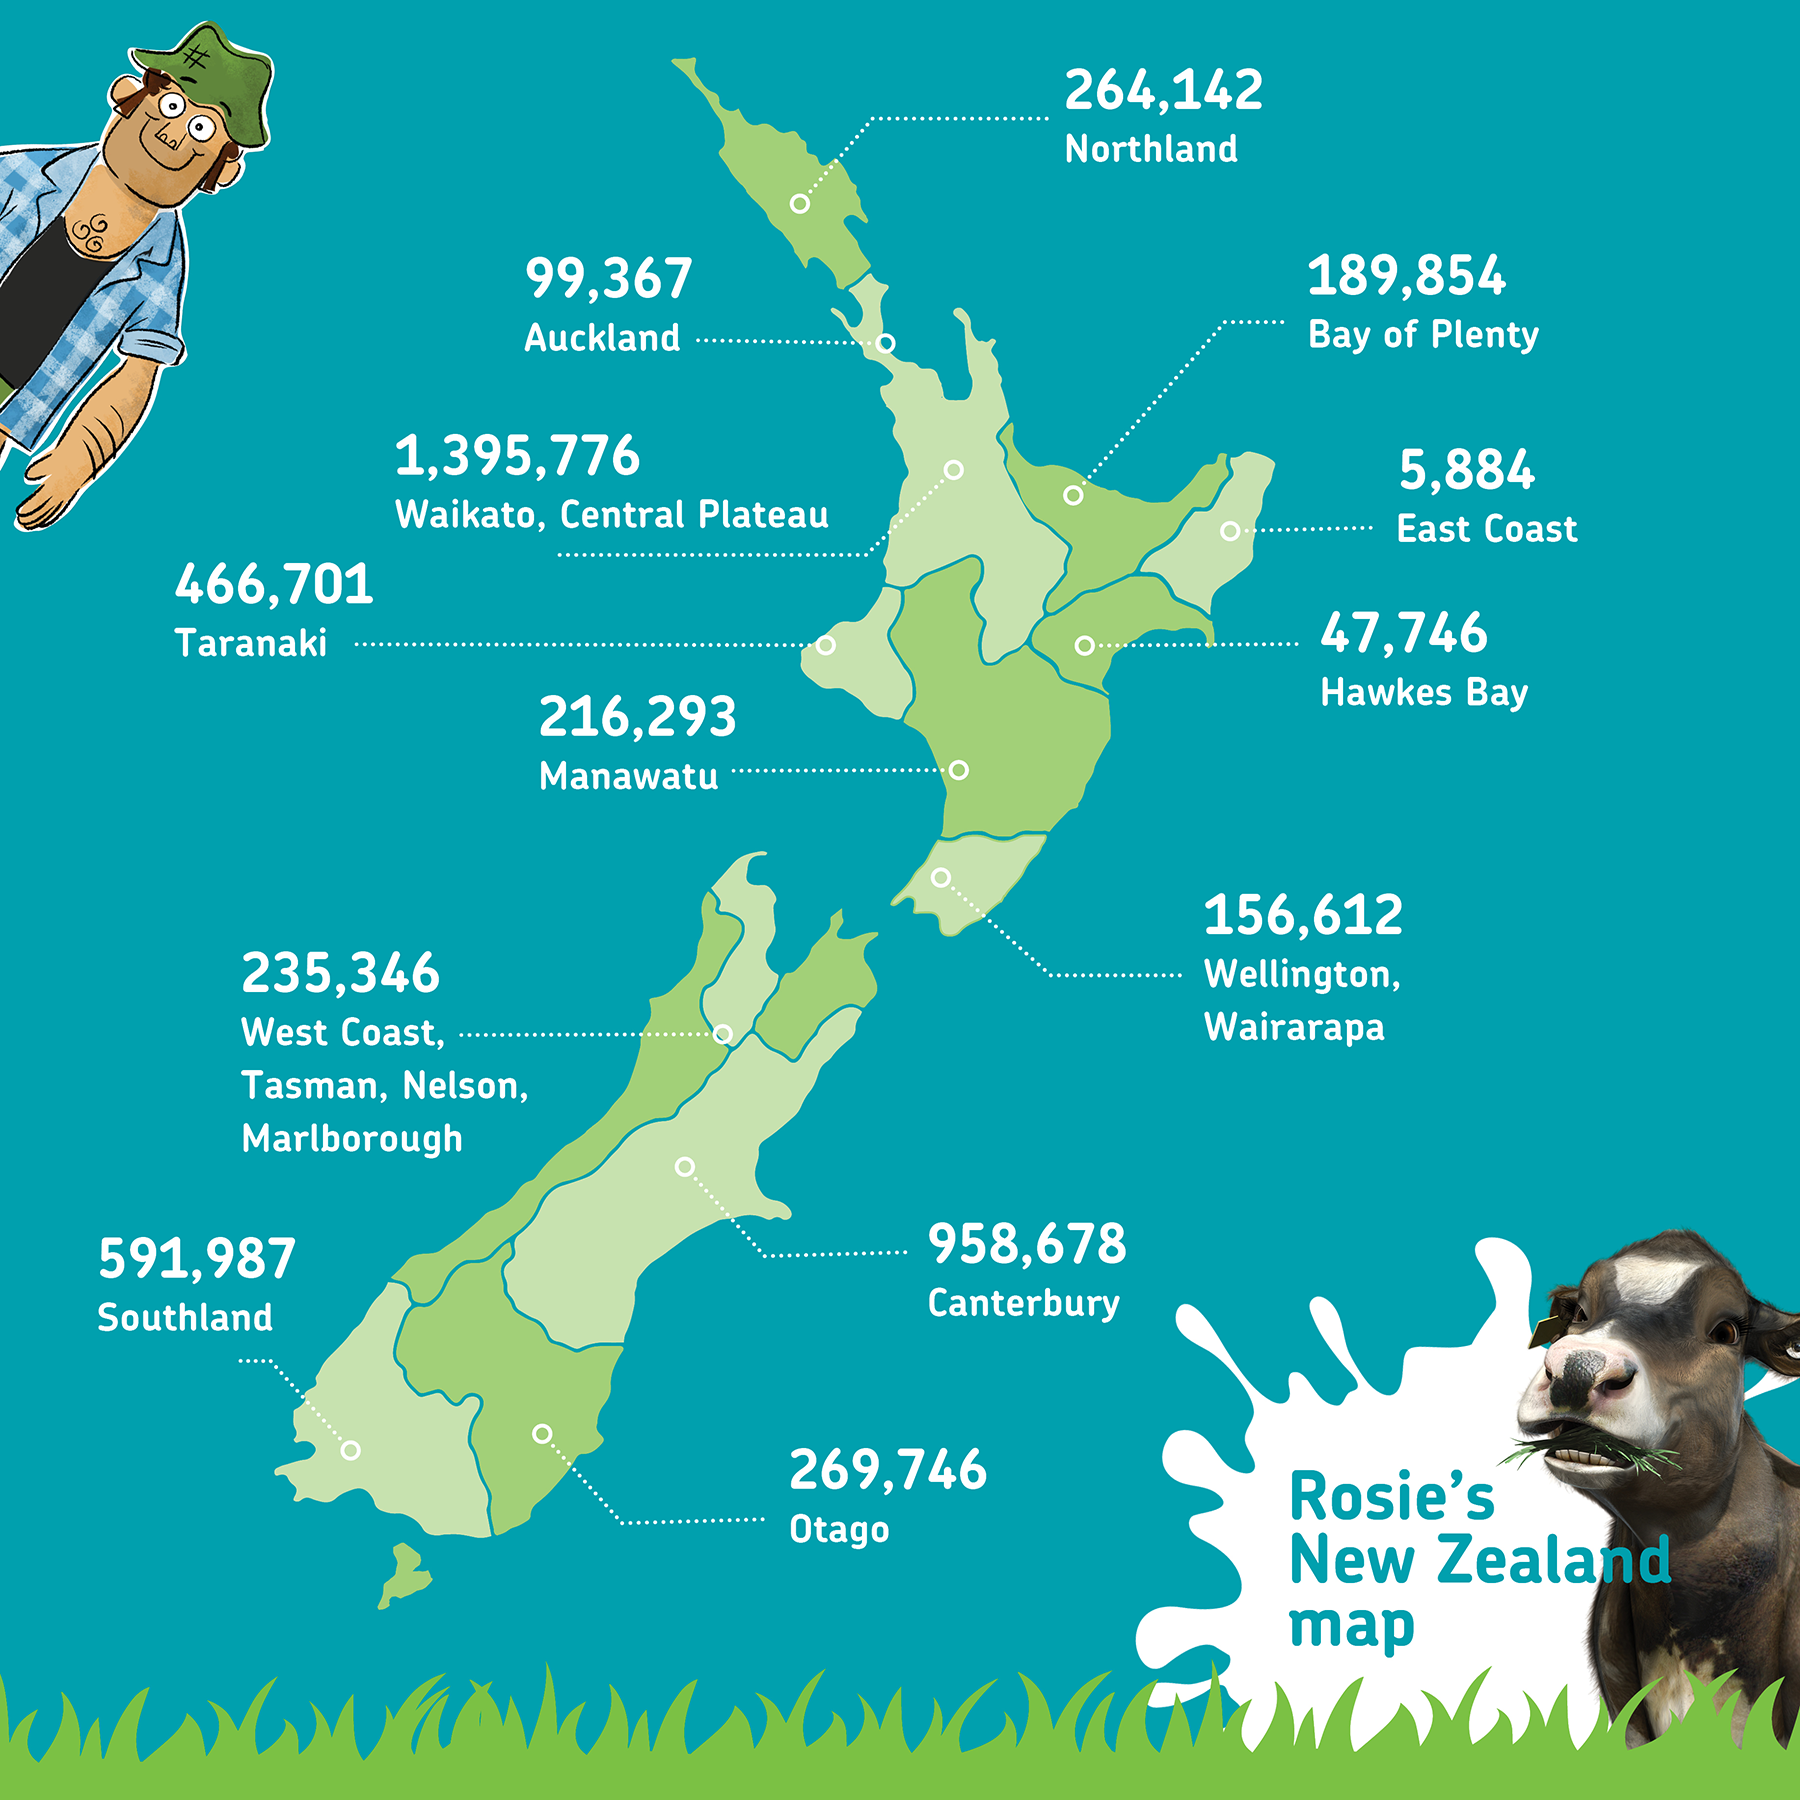 Rosies New Zealand Cows Map 2019